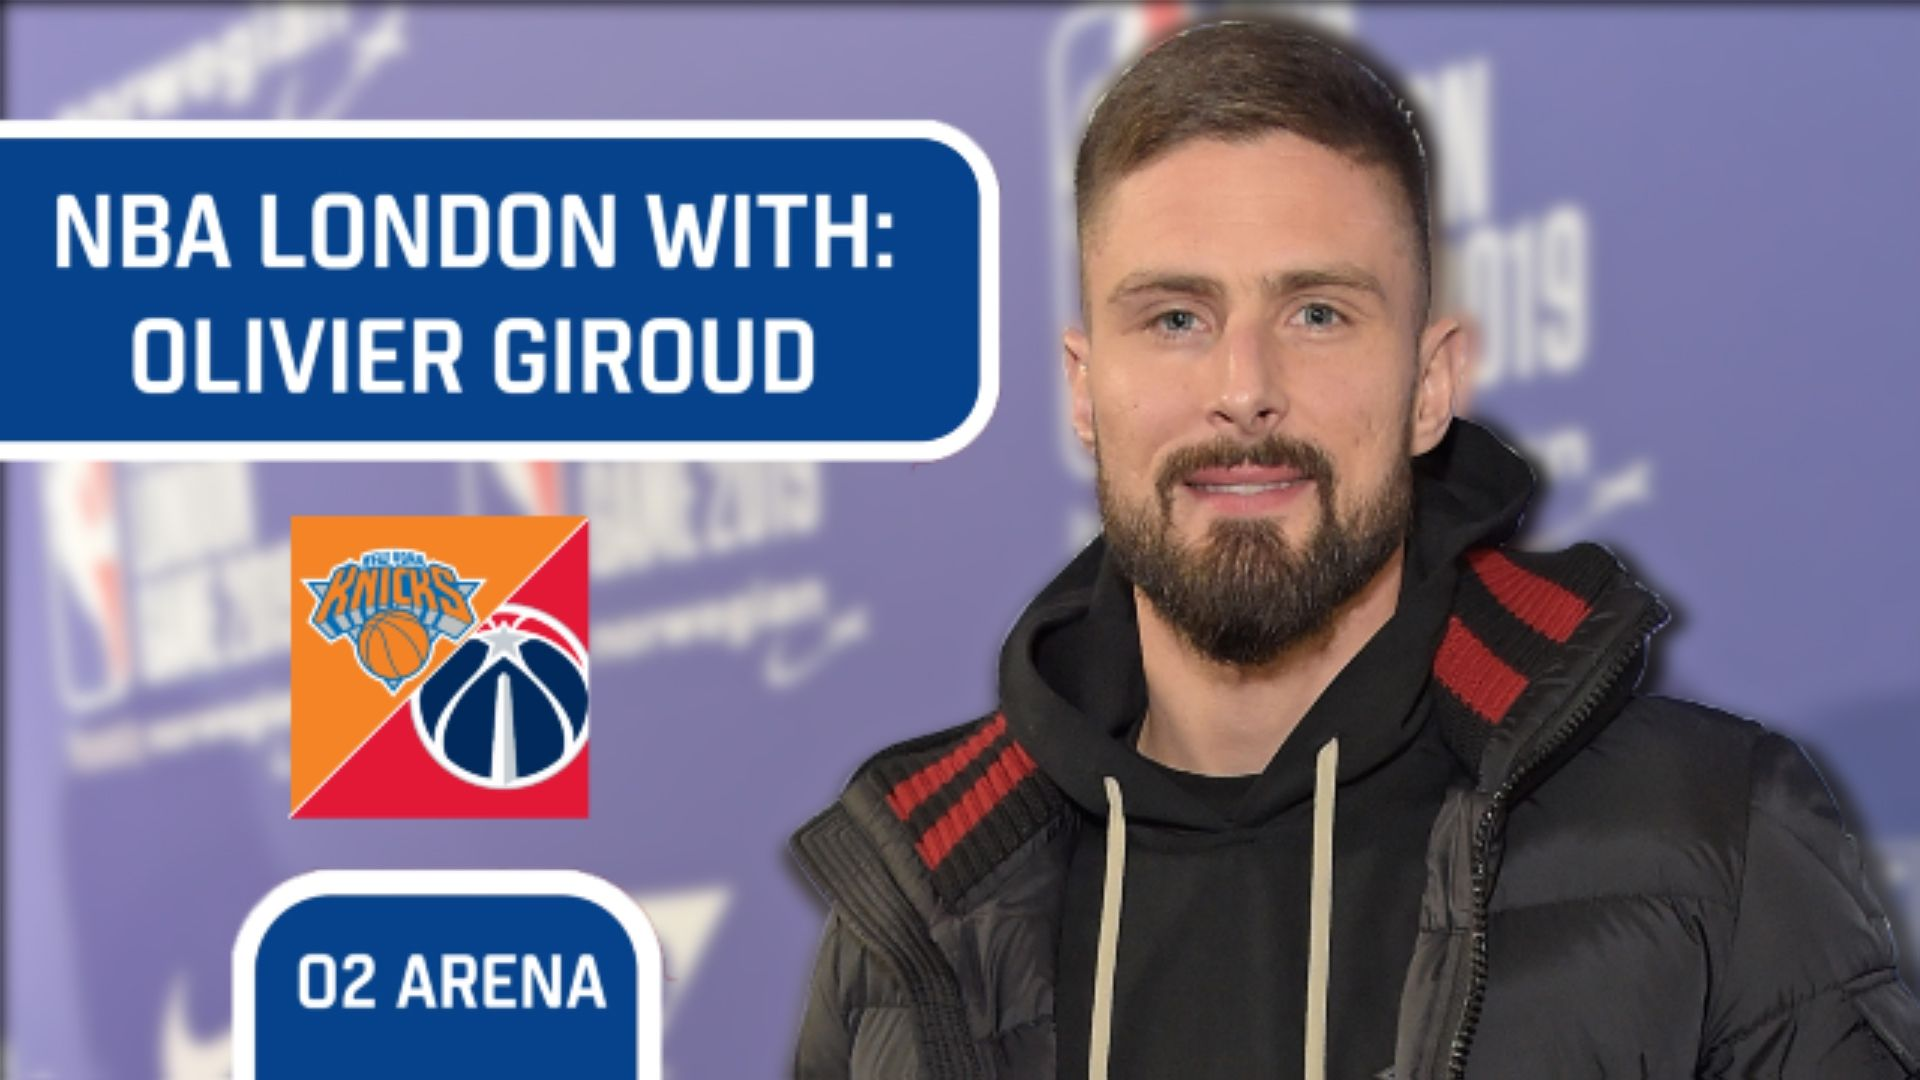 NBA London with Olivier Giroud